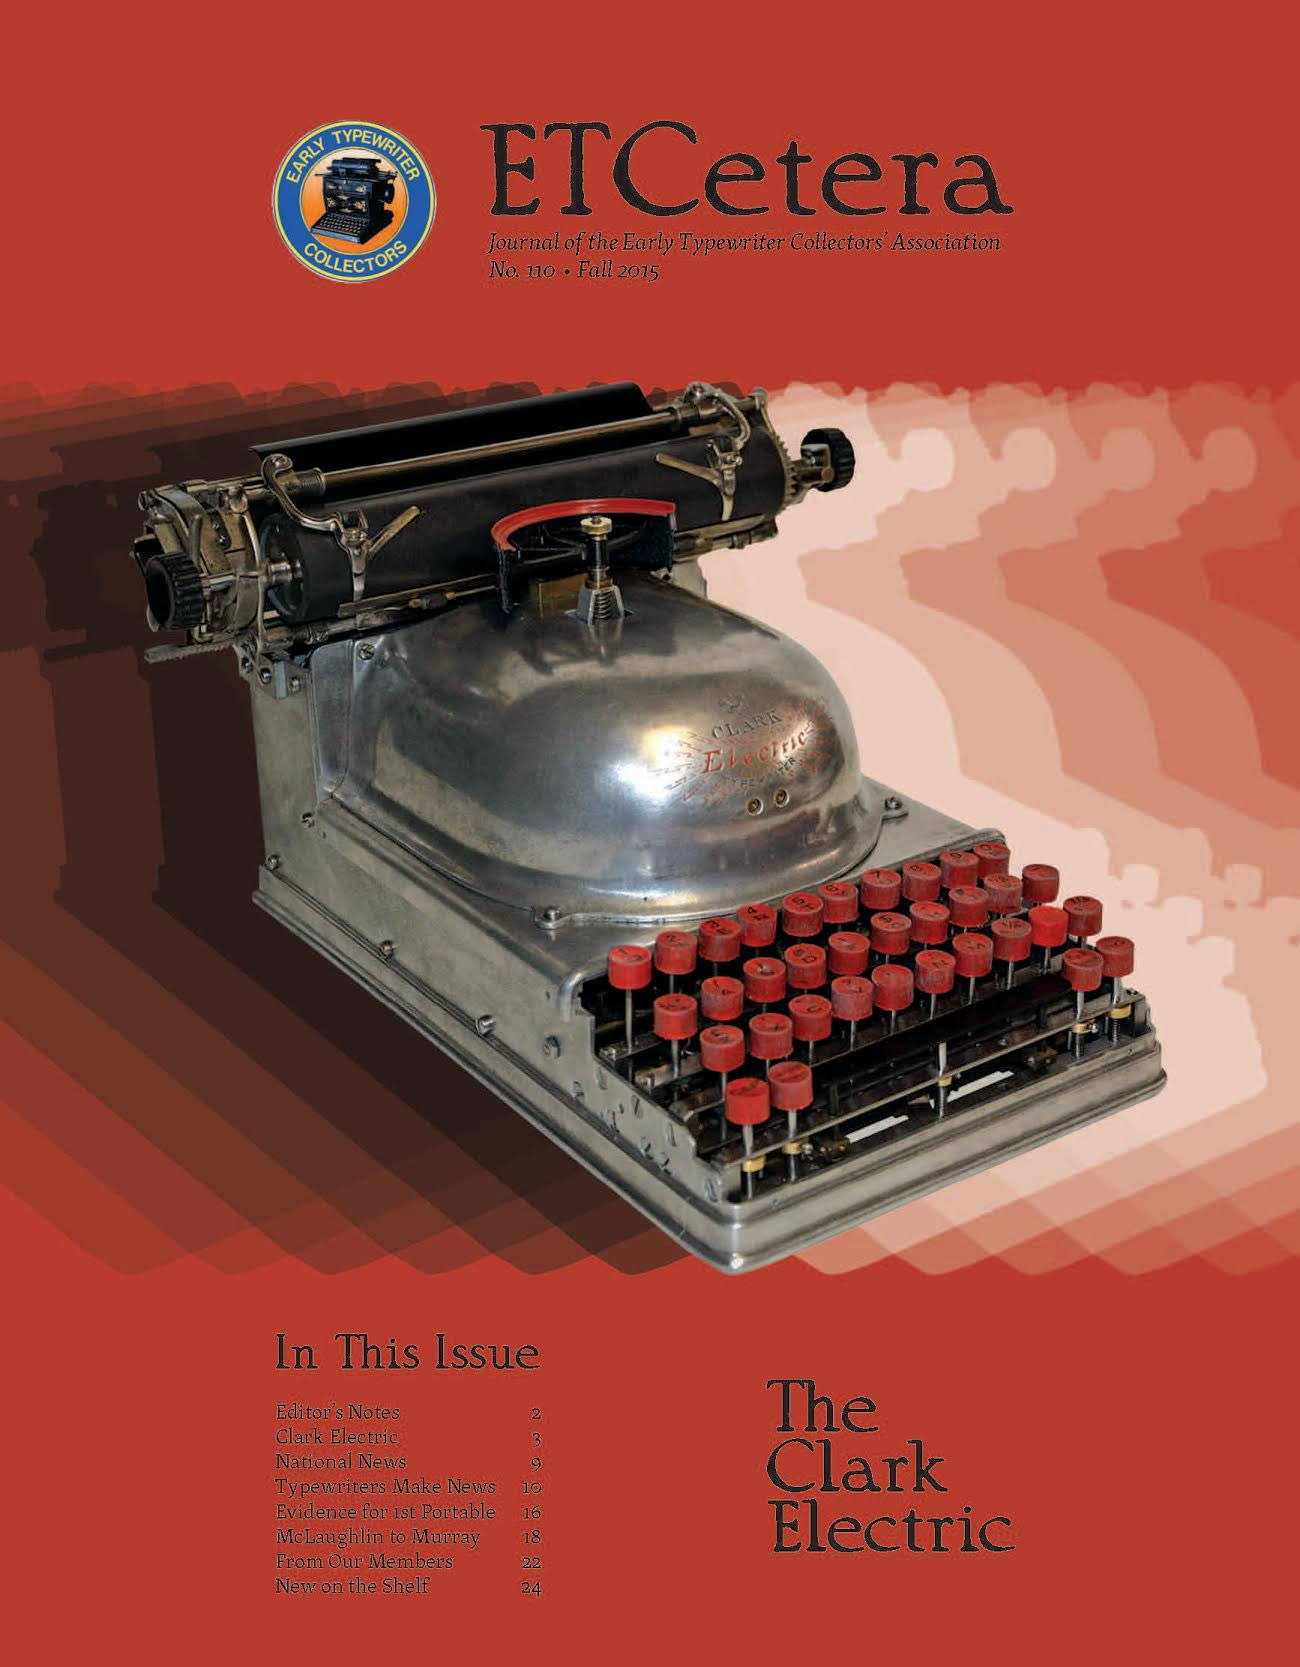 "The new ETCetera Magazine is out, and among the very interesting and neat things contained therein, I found also the sad news that one of the first Typewriter Hunters to contribute machine galleries to the TWDB has passed away. Cuyler ""Ned"" Brooks, sorry to see you go, friend - you'll be missed. ):"